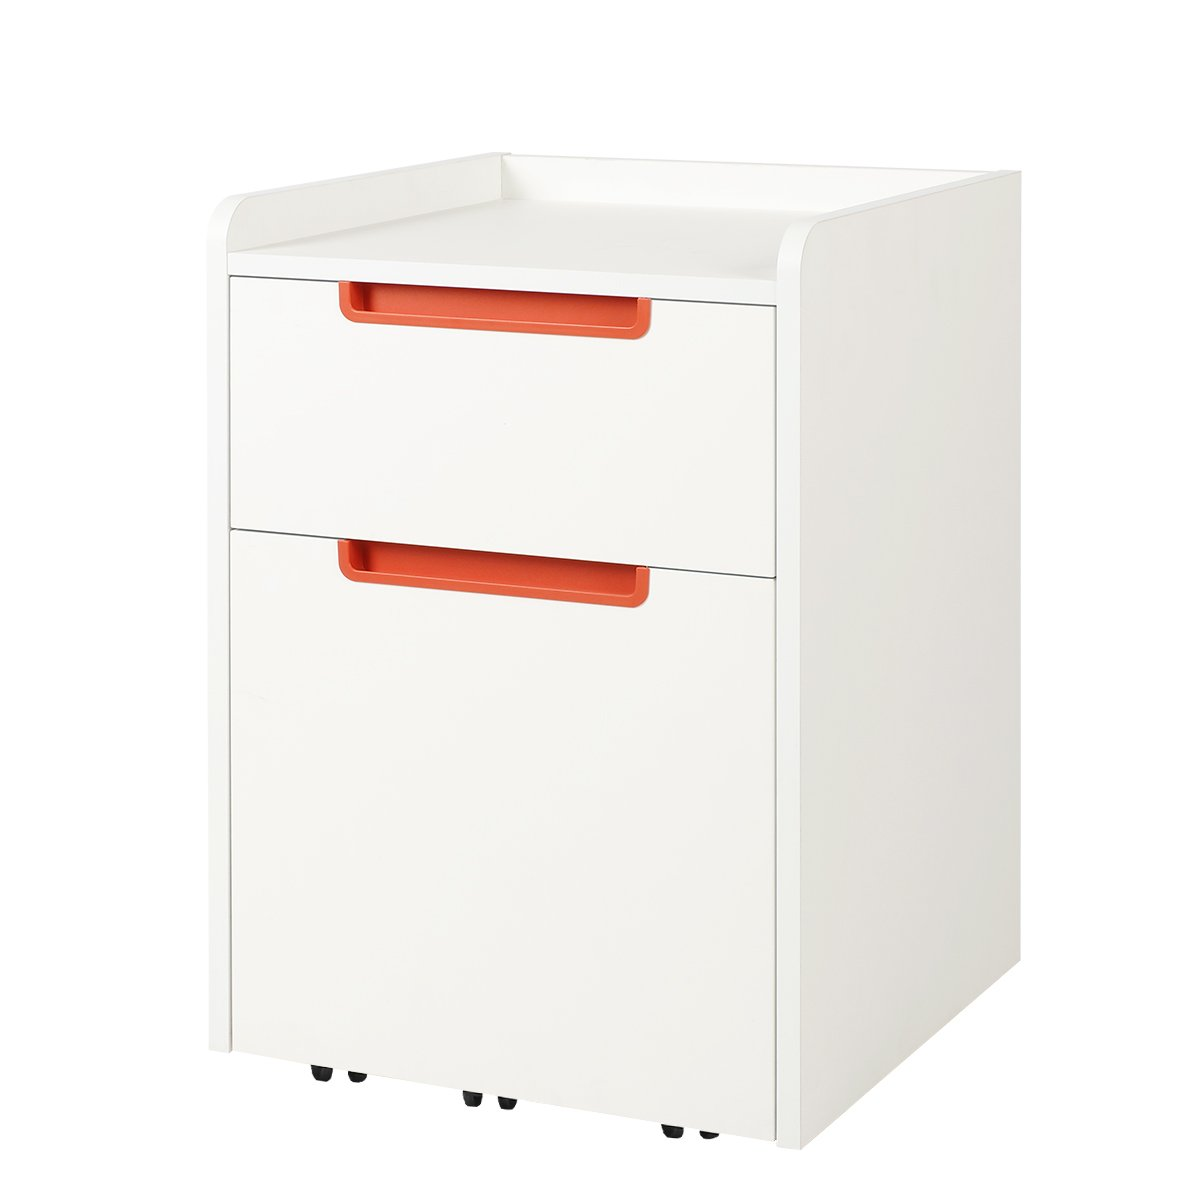 DEVAISE A4 Mobile 2 Drawers Filing Cabinet/Pedestal; Wood, White (Blue F-Handle)